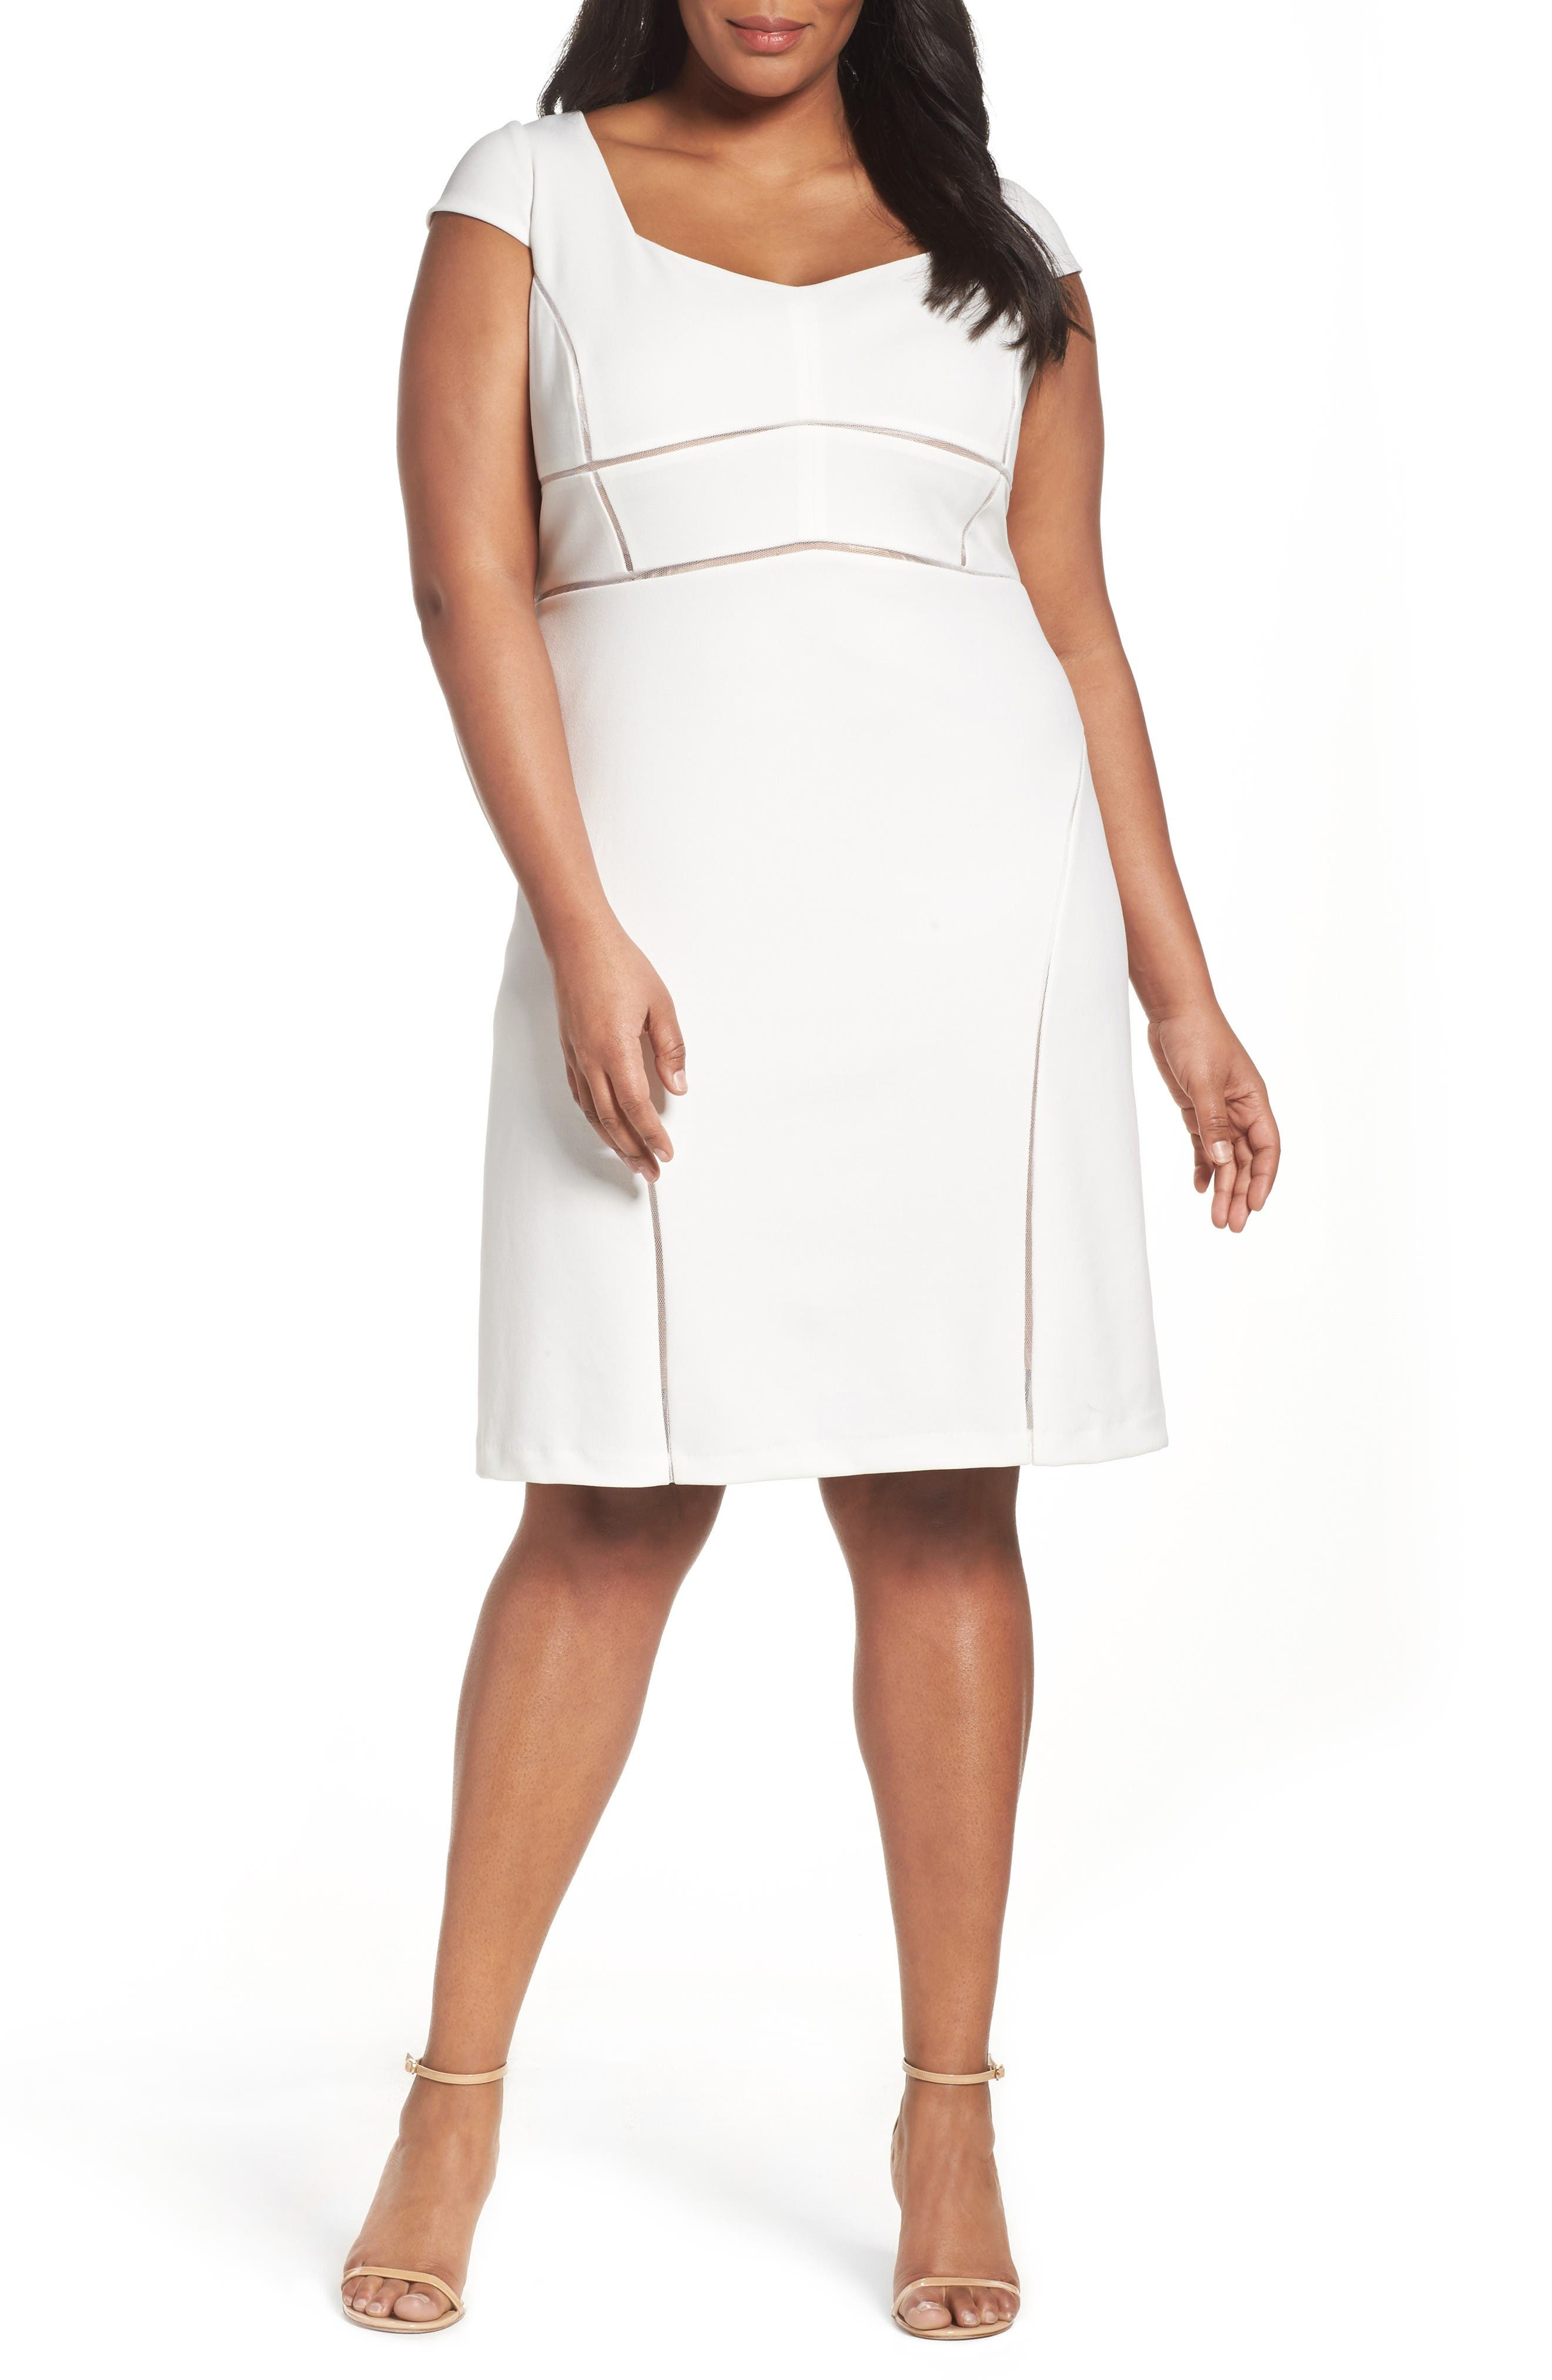 Alternate Image 1 Selected - Adrianna Papell Stretch Crepe Sheath Dress (Plus Size)